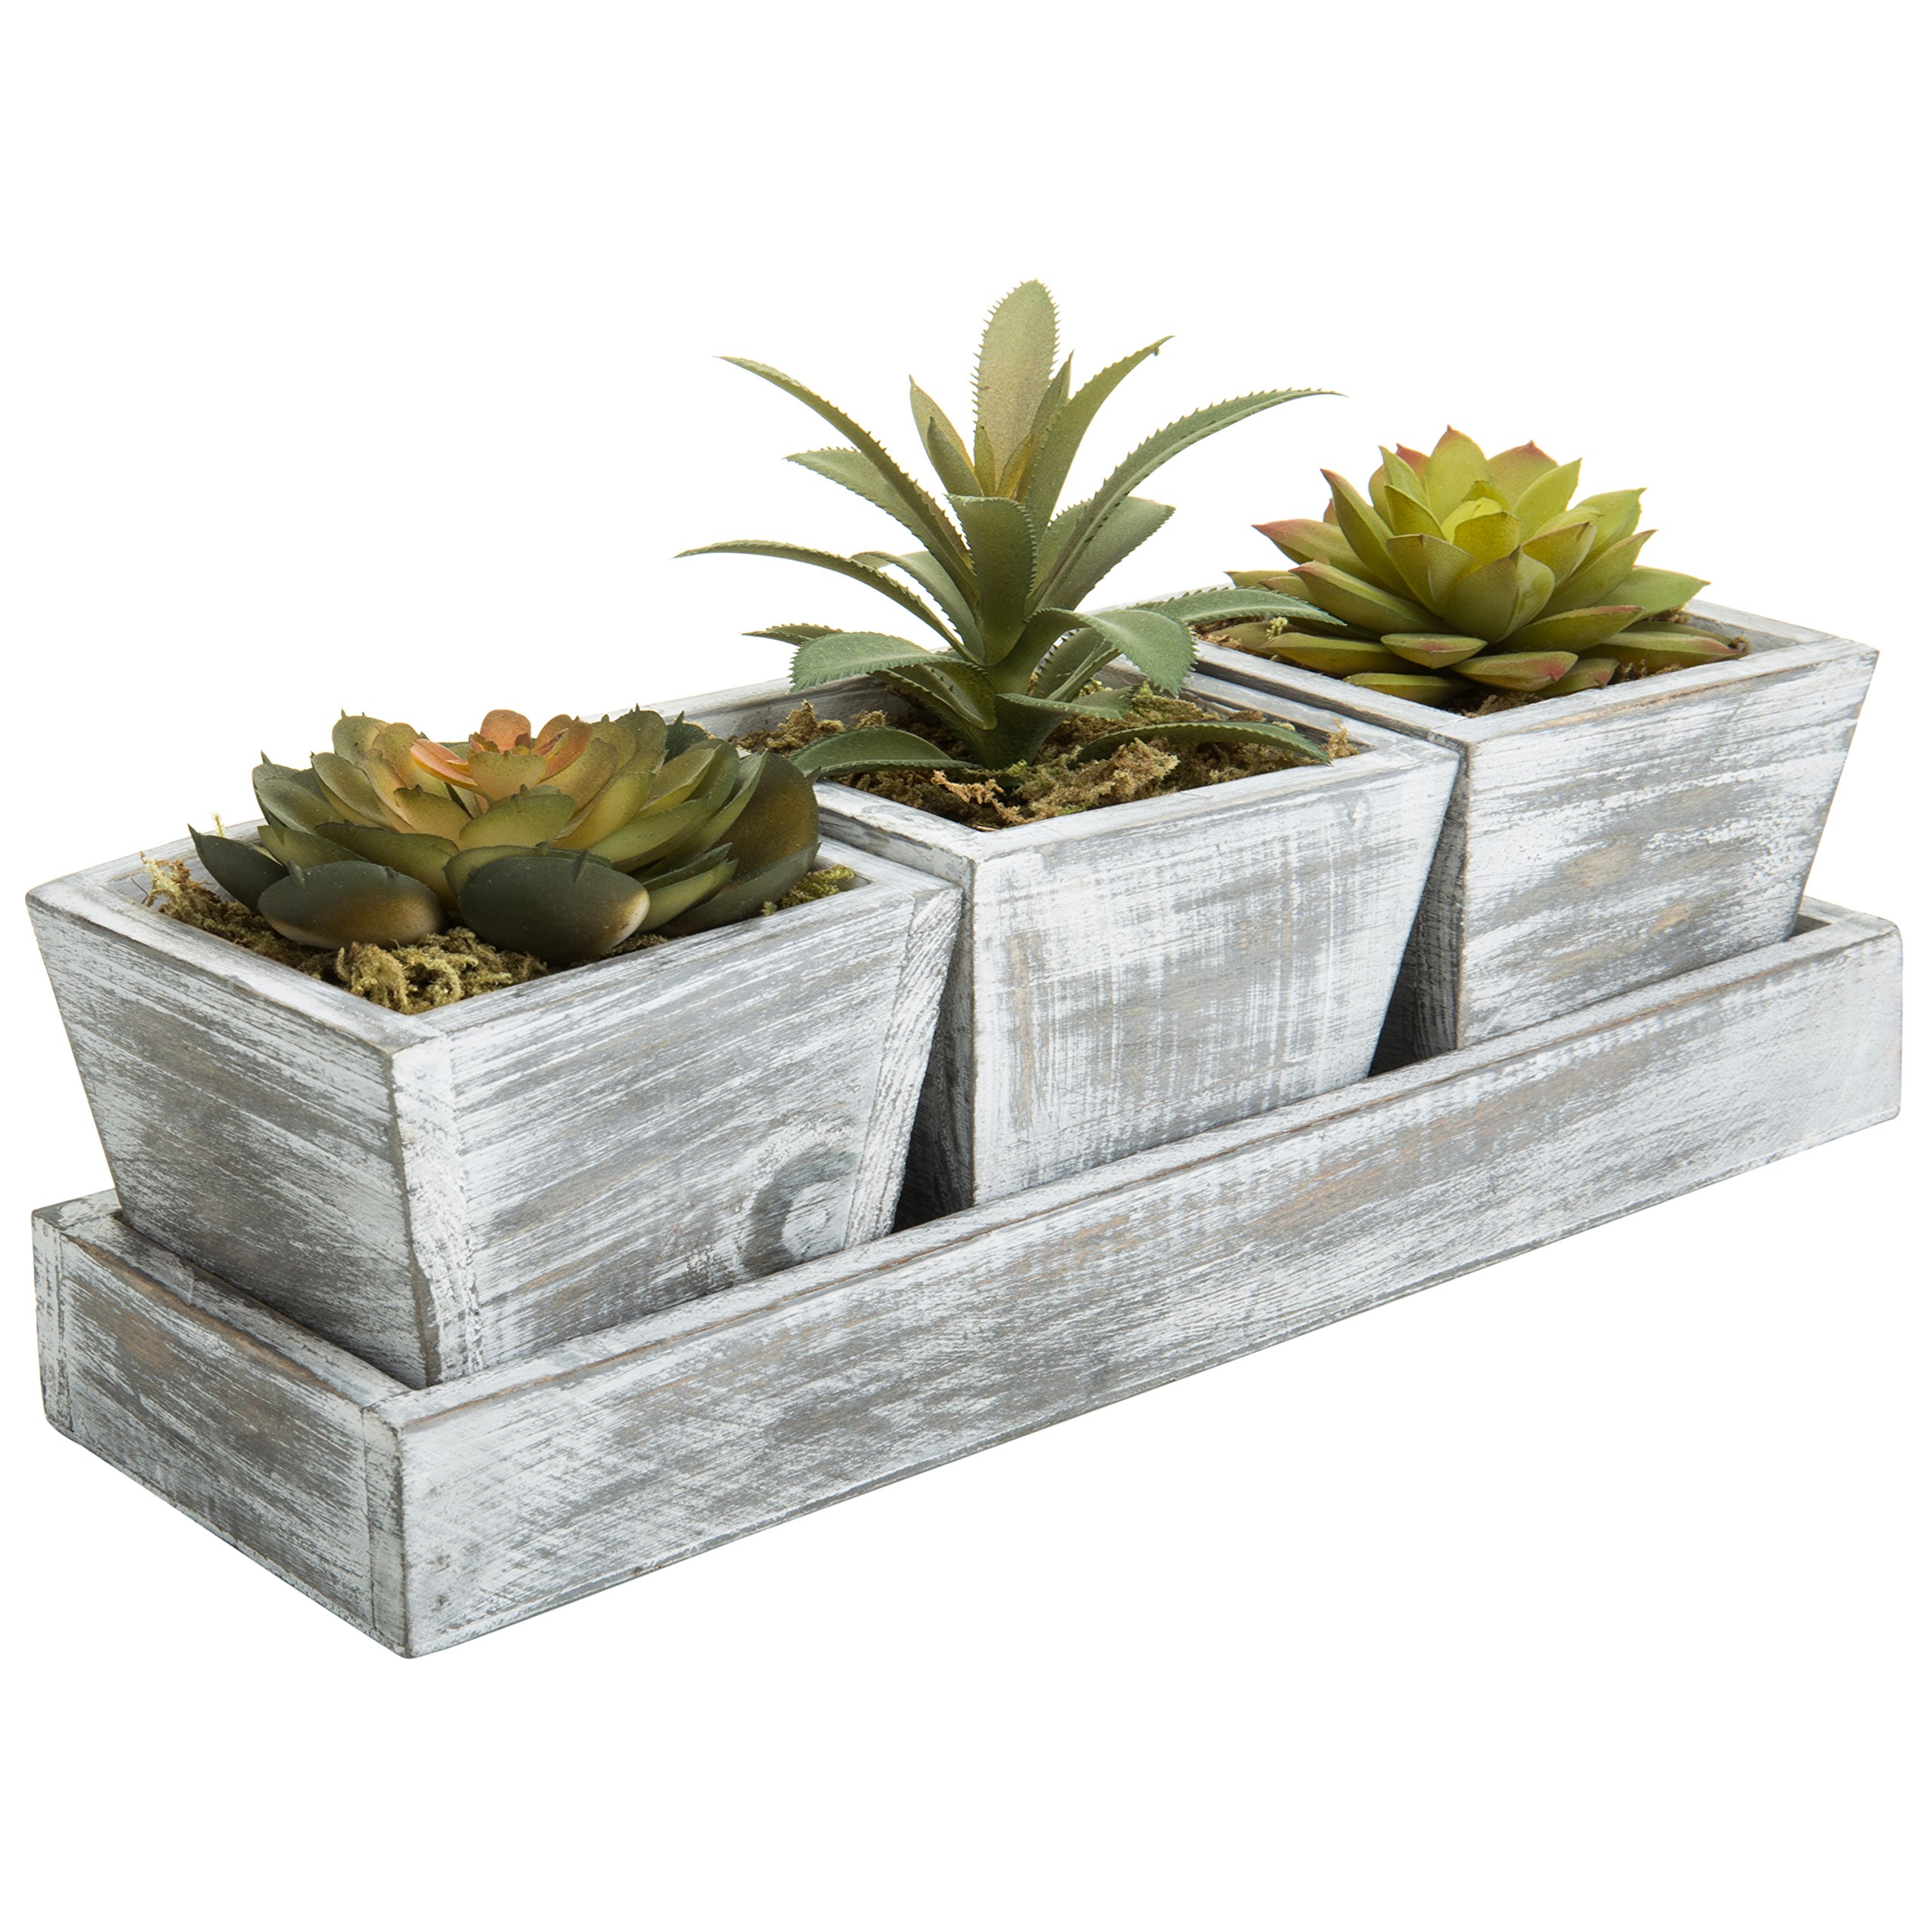 MyGift Set of 3 Artificial Plants in Rustic Wood Planter Boxes with 11-Inch Display Tray